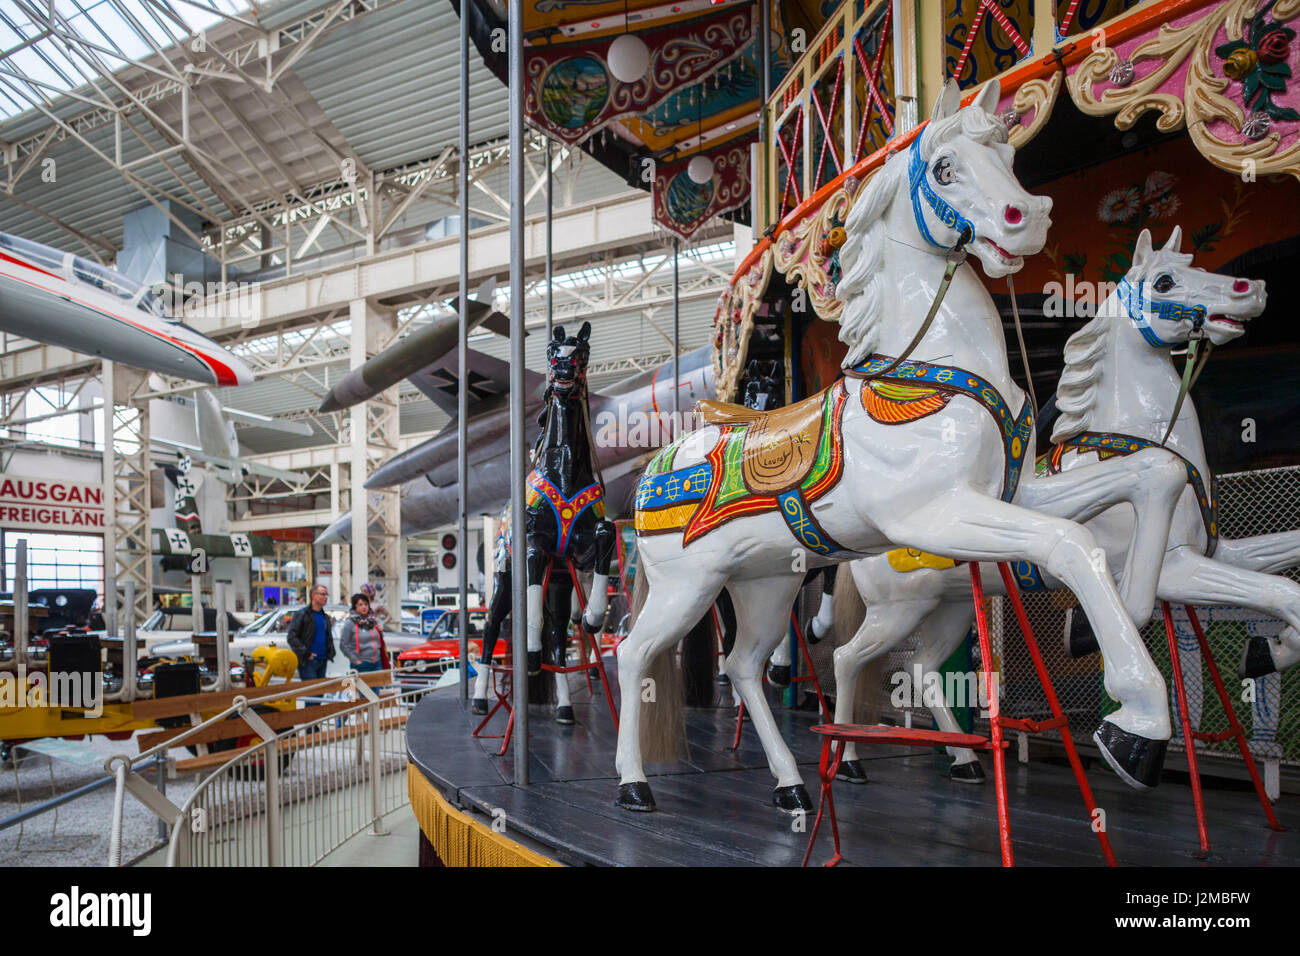 Germany, Rheinland-Pfalz, Speyer,Technik Museum Speyer, aviation and technology display gallery, carousel - Stock Image